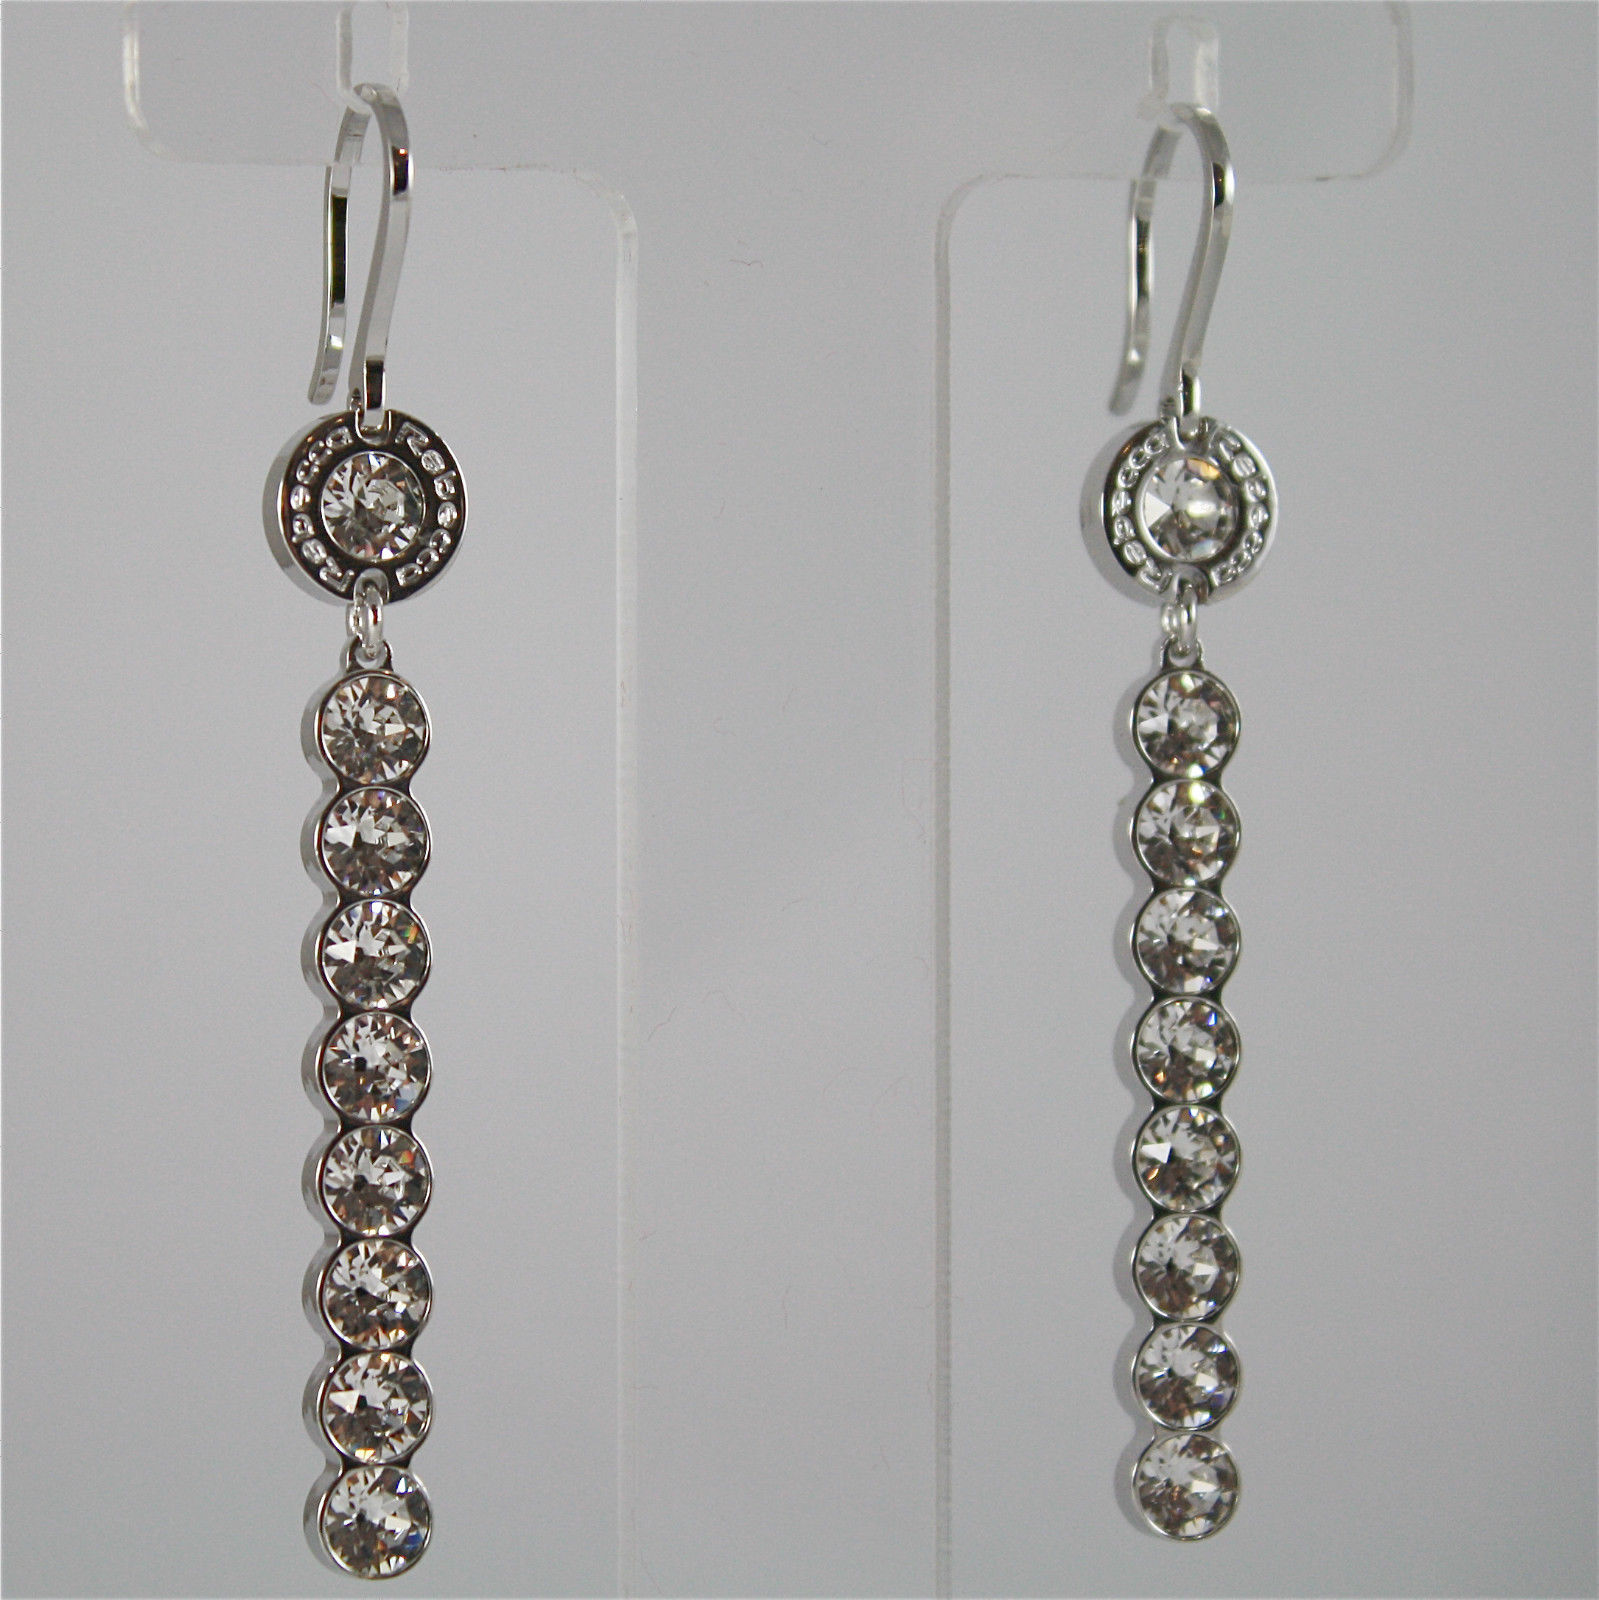 WHITE GOLD PLATED BRONZE REBECCA EARRINGS PALM BEACH BPBORP28 MADE IN ITALY 2.44